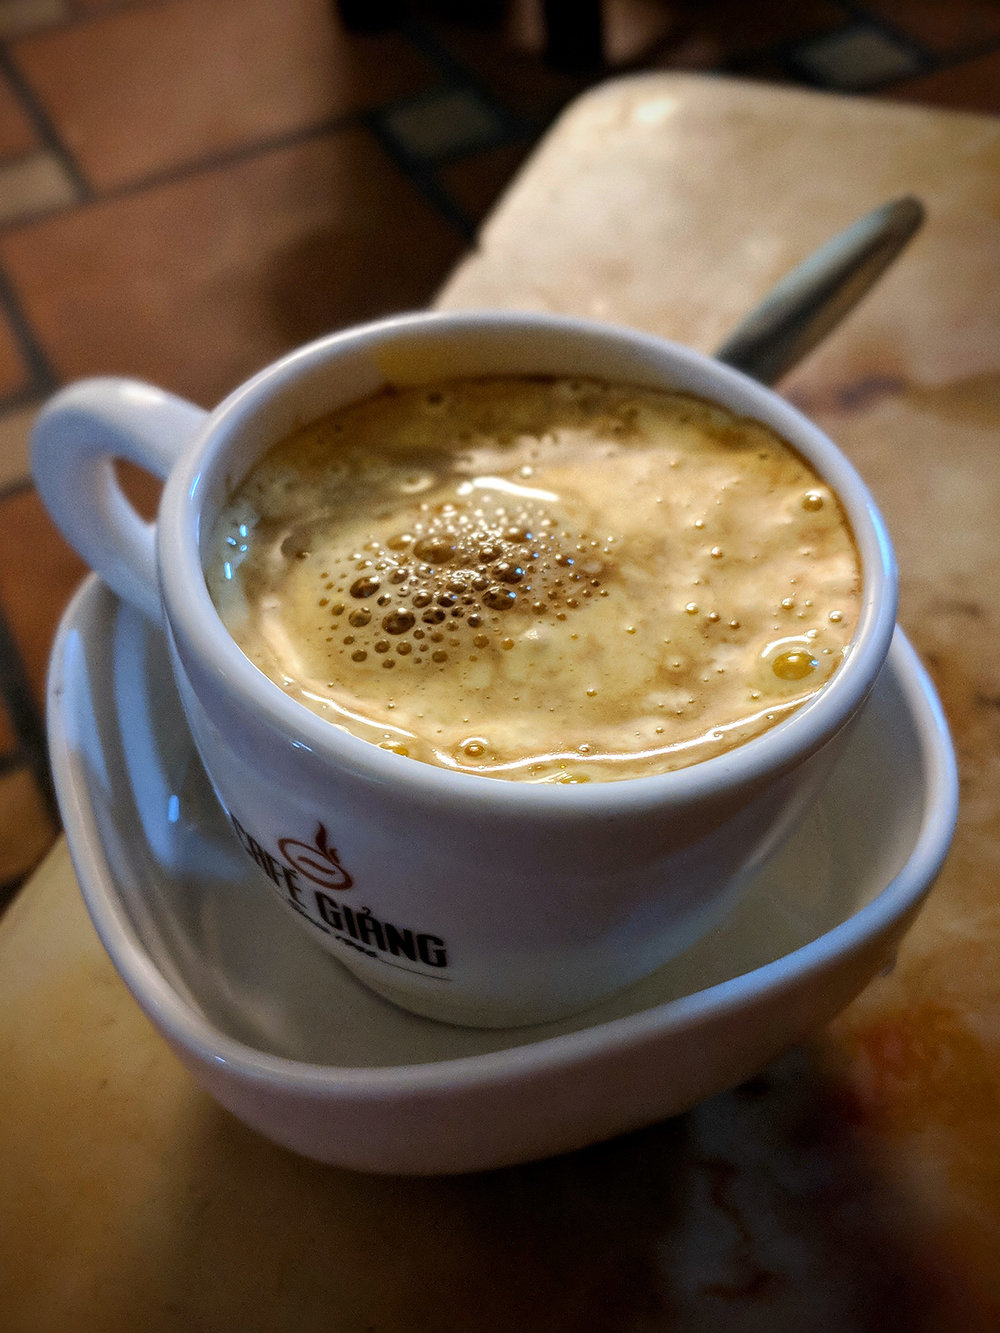 Heavenly Egg Coffee- espresso topped with whipped egg + sugar (tastes like the creamiest marshmallow whip!) at Cafe Giảng